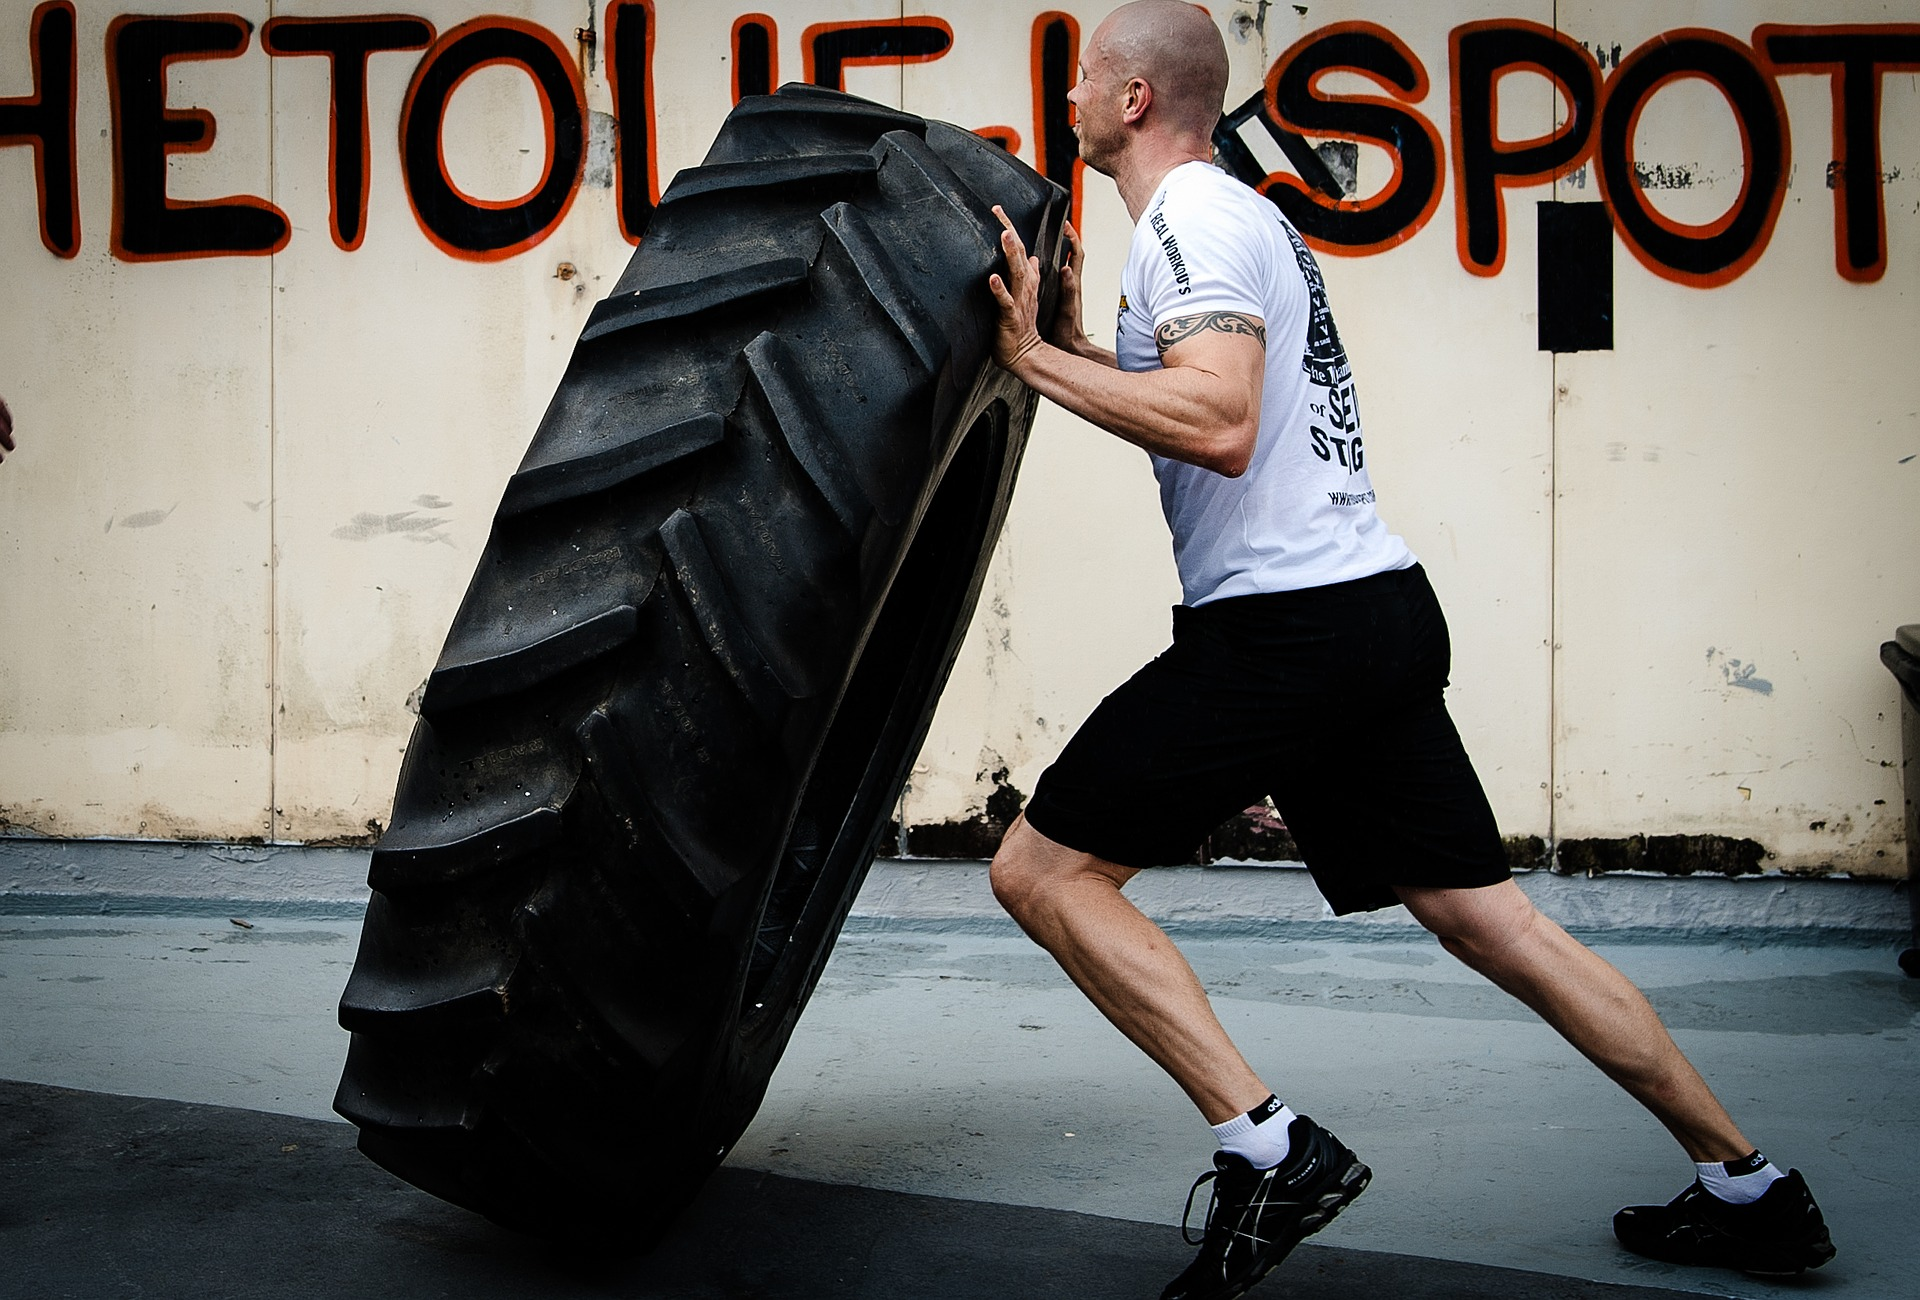 10 tyre-flipping-2141109_1920